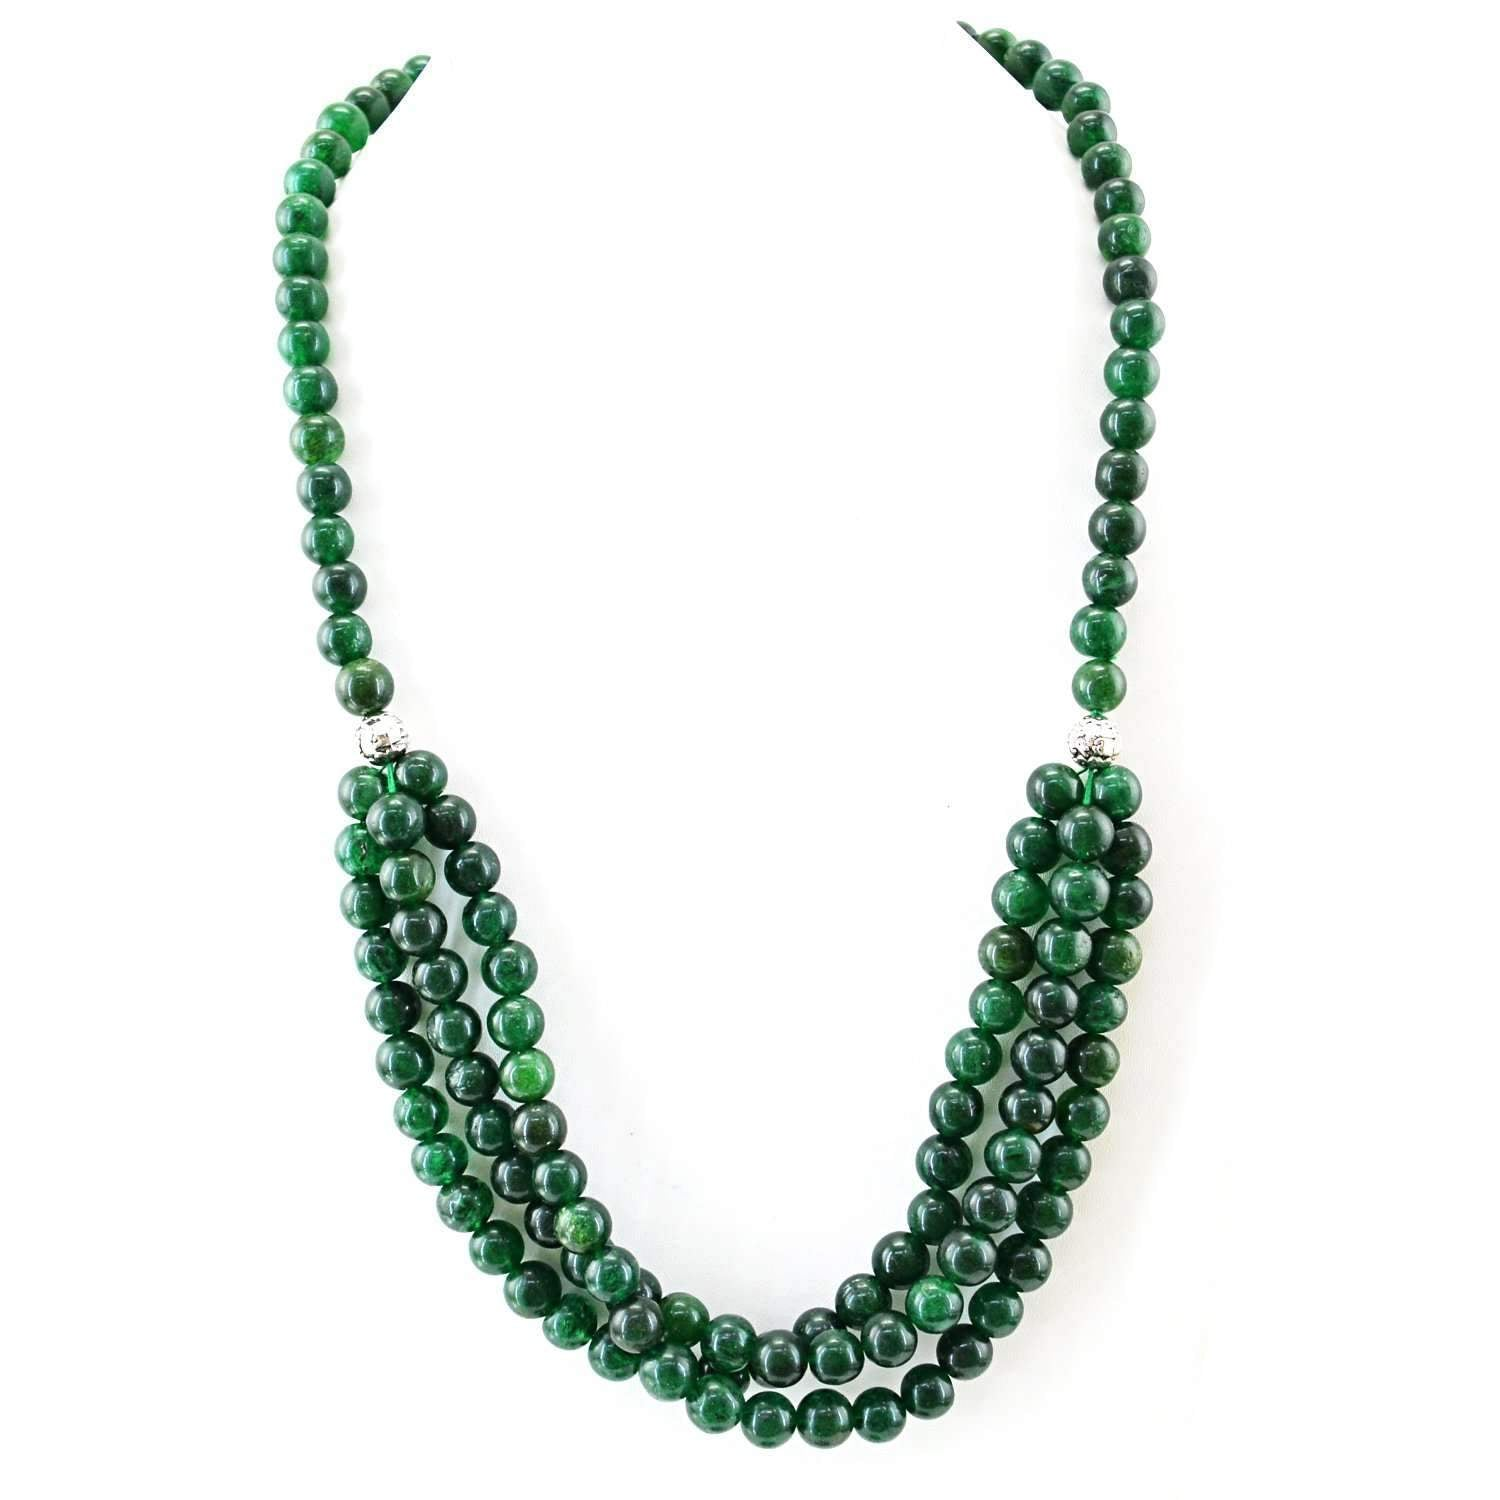 gemsmore:Single Strand Green Jade Necklace Natural Round Shape Beads